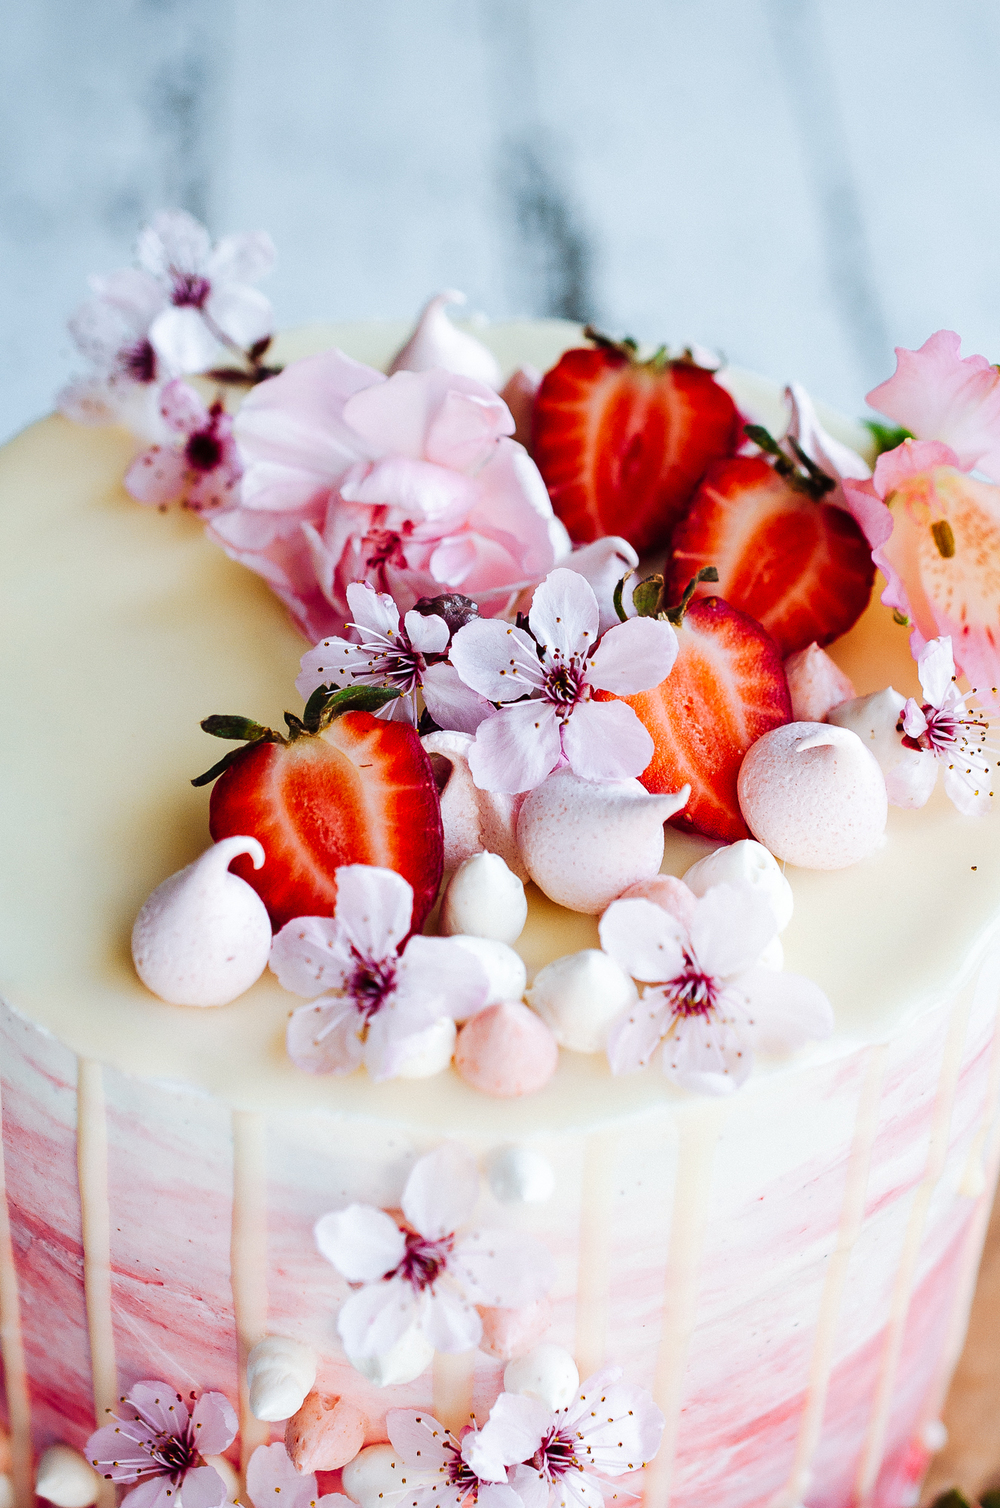 Images Of Cakes Decorated With Strawberries